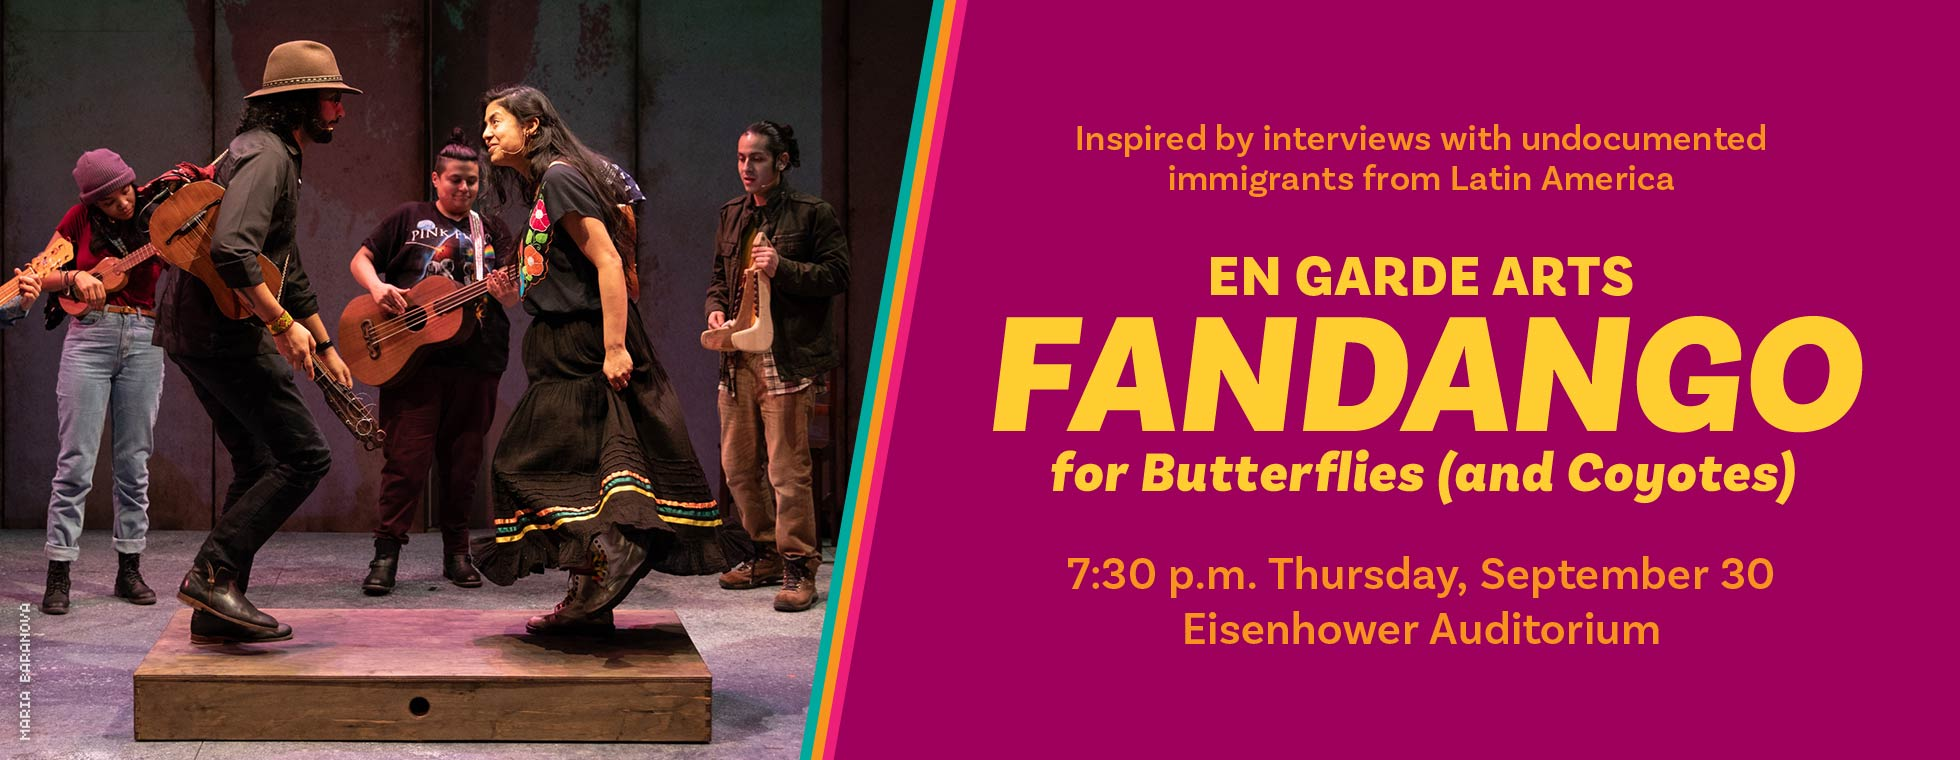 En Garde Arts - Fandango for Butterflies (and Coyotes) 7:30 p.m. Thursday, September 30 at Eisenhower Auditorium. Inspired by interviews with undocumented immigrants from Latin America.